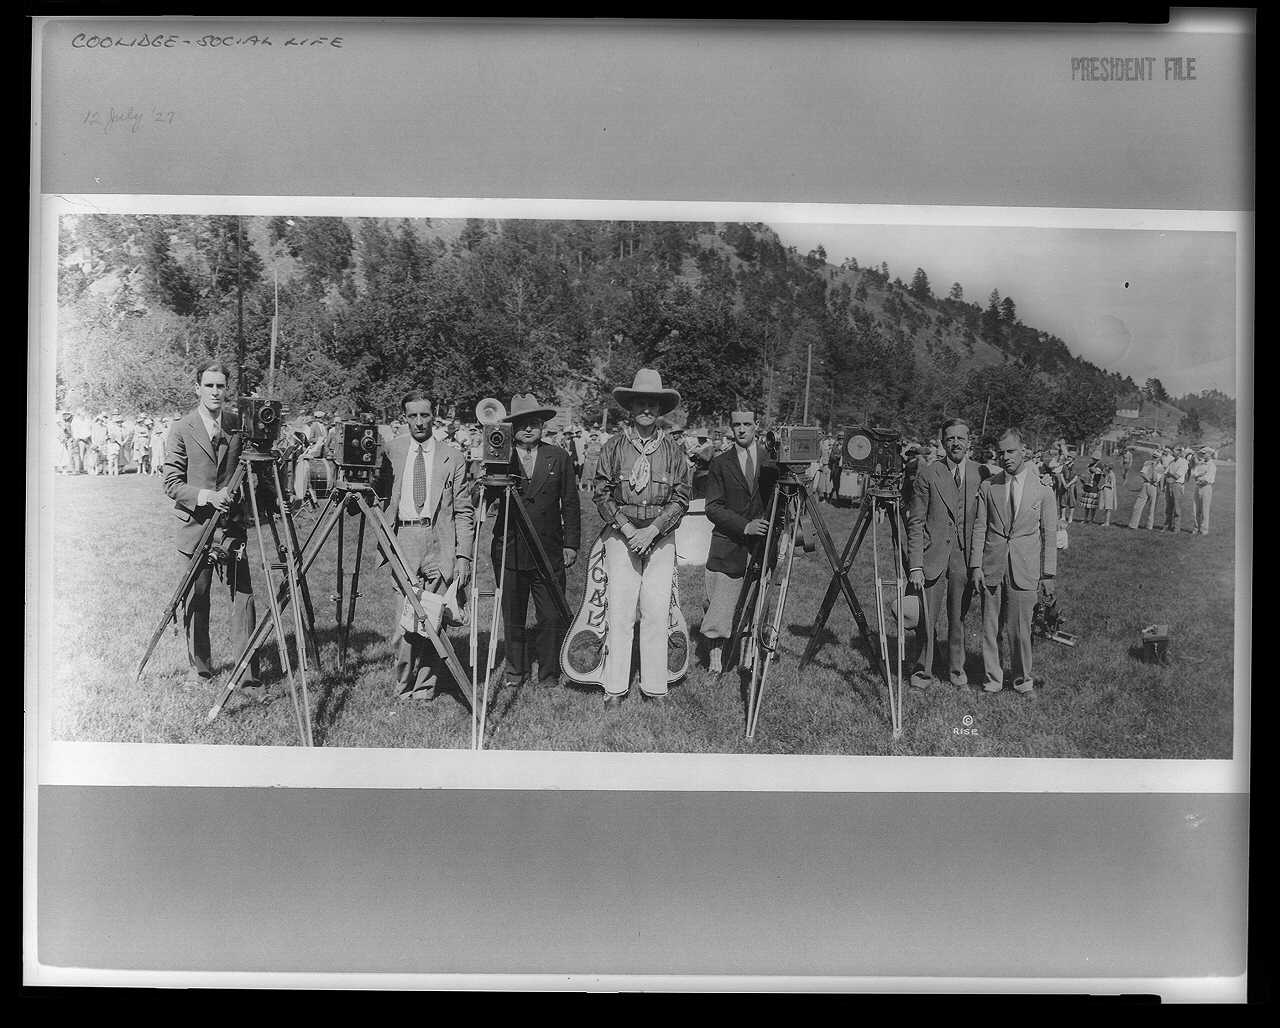 President Coolidge posing in his new gear with photographers, near the Game Lodge in Custer State Park, South Dakota.